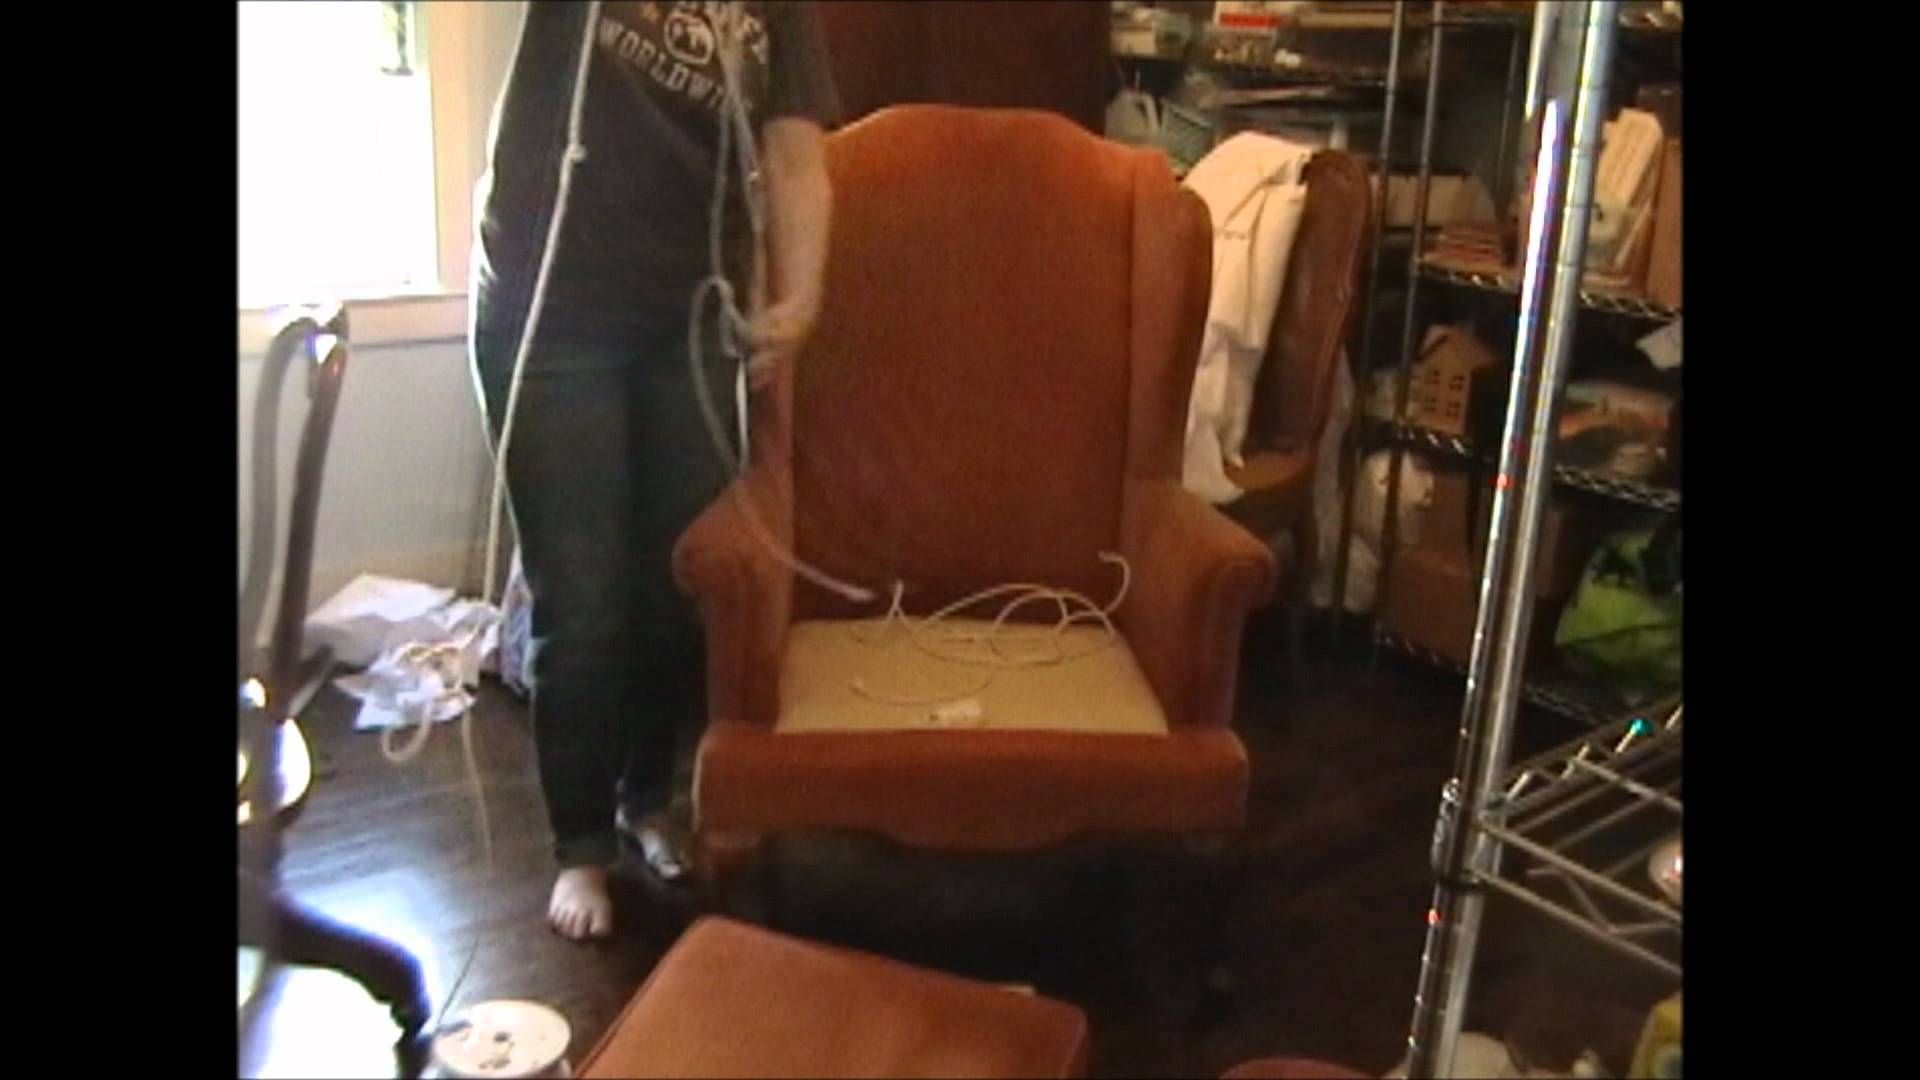 Video Series How To Slip Cover A Chair/ Couch. I'm Going To